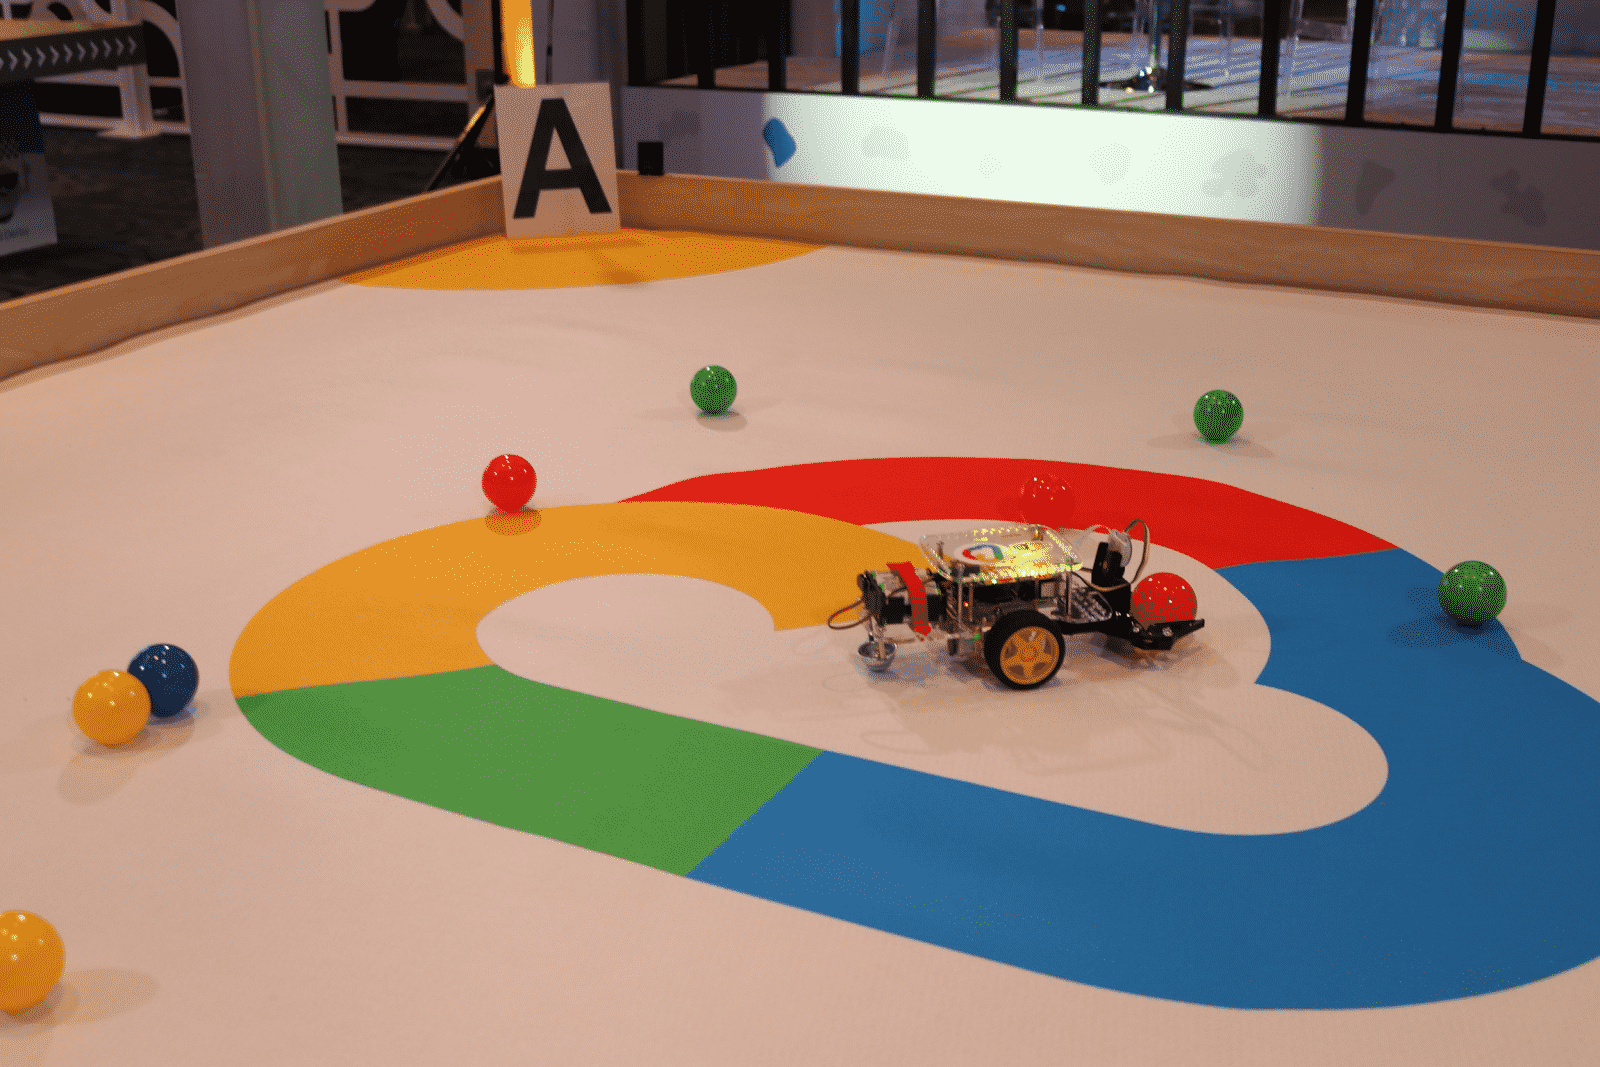 An image of the Leverege robot playing in the testing arena